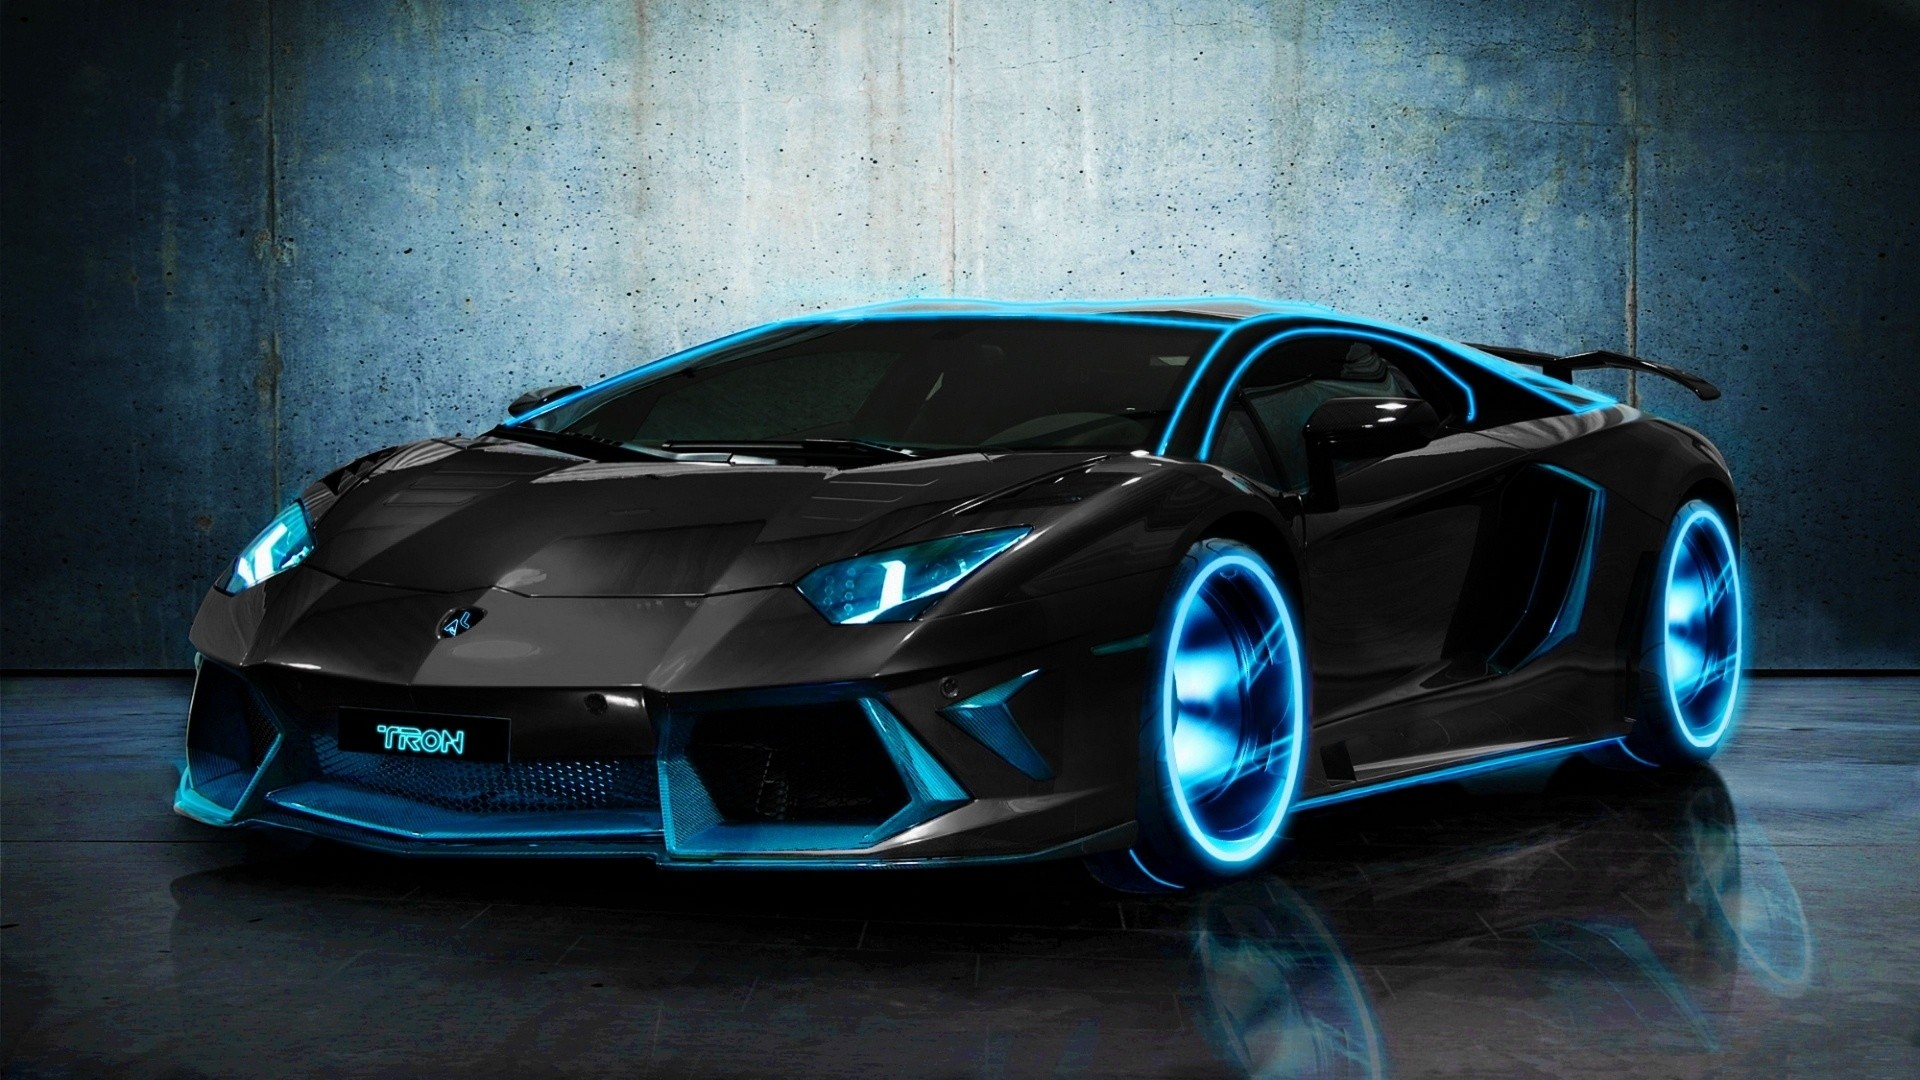 Exotic Car Wallpapers Hd Edition Stugoncom 2